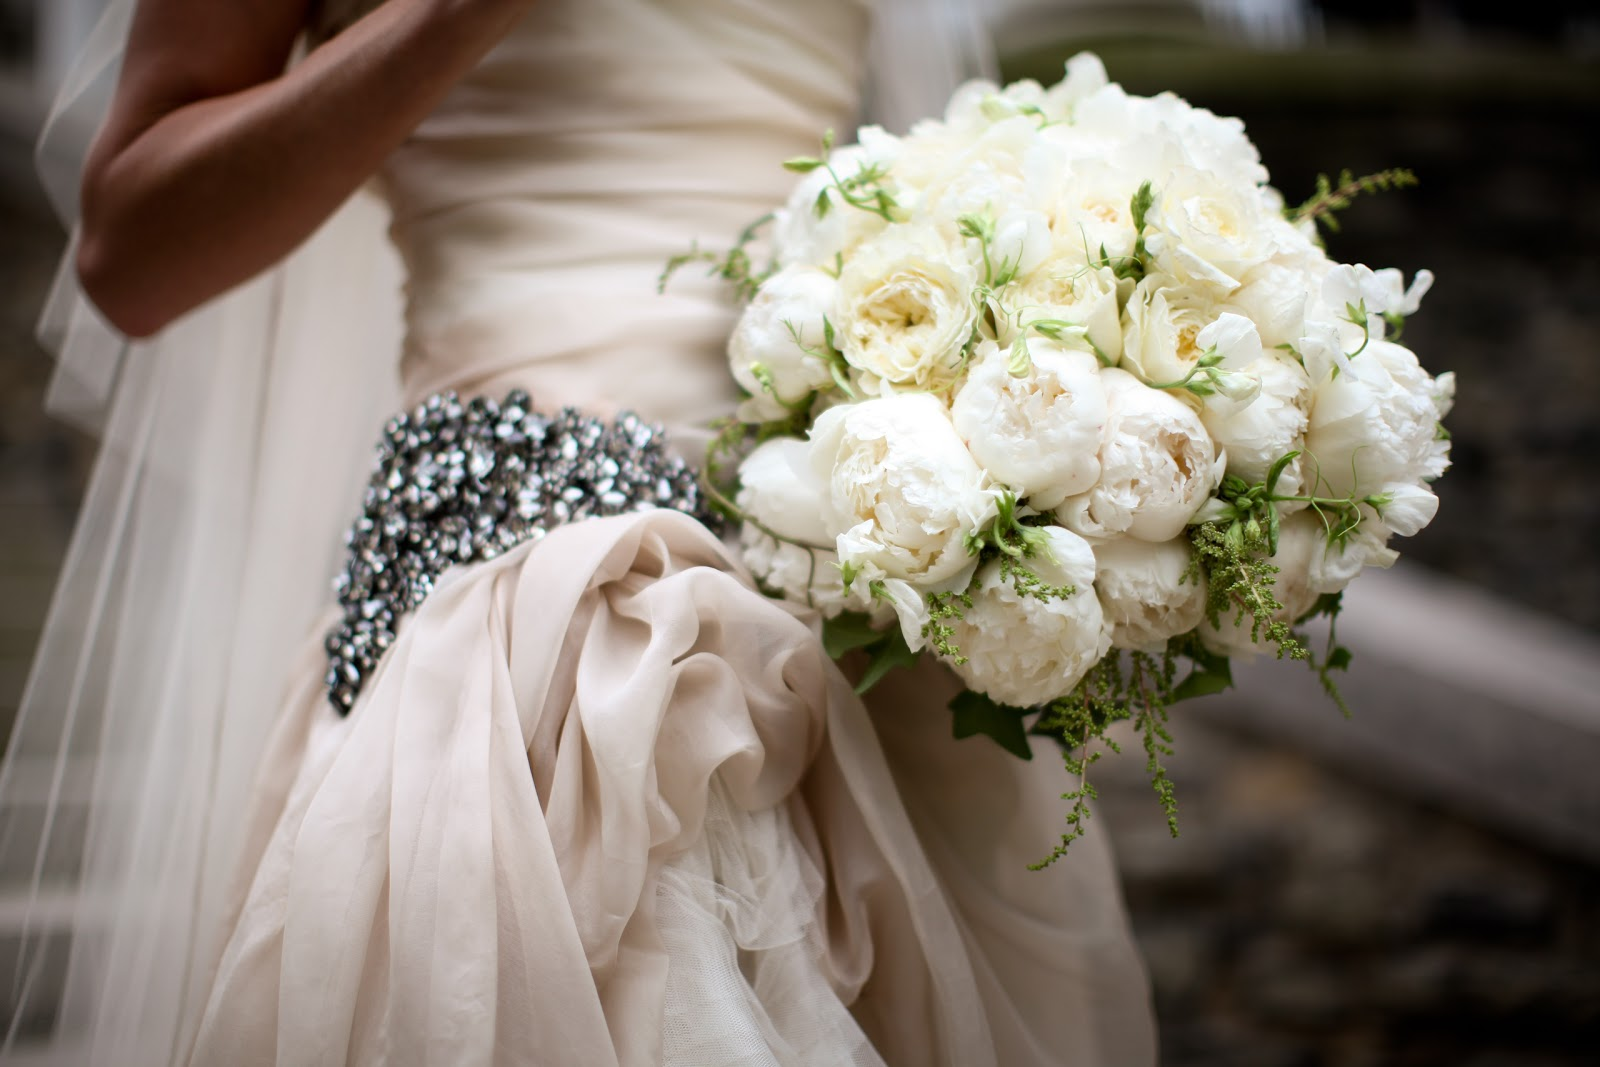 Peony & Garden Rose Bride's Bouquet - Cream David Austin Patience Garden Roses, white peonies, white astilbe, white ranunculus, white sweat peas, Garden Rose Bouquet, David Austin Rose Bouquet, Rose Bridal Bouquet, Rose Bouquet, Wedding Bouquet, Splendid Stems Wedding Flowers